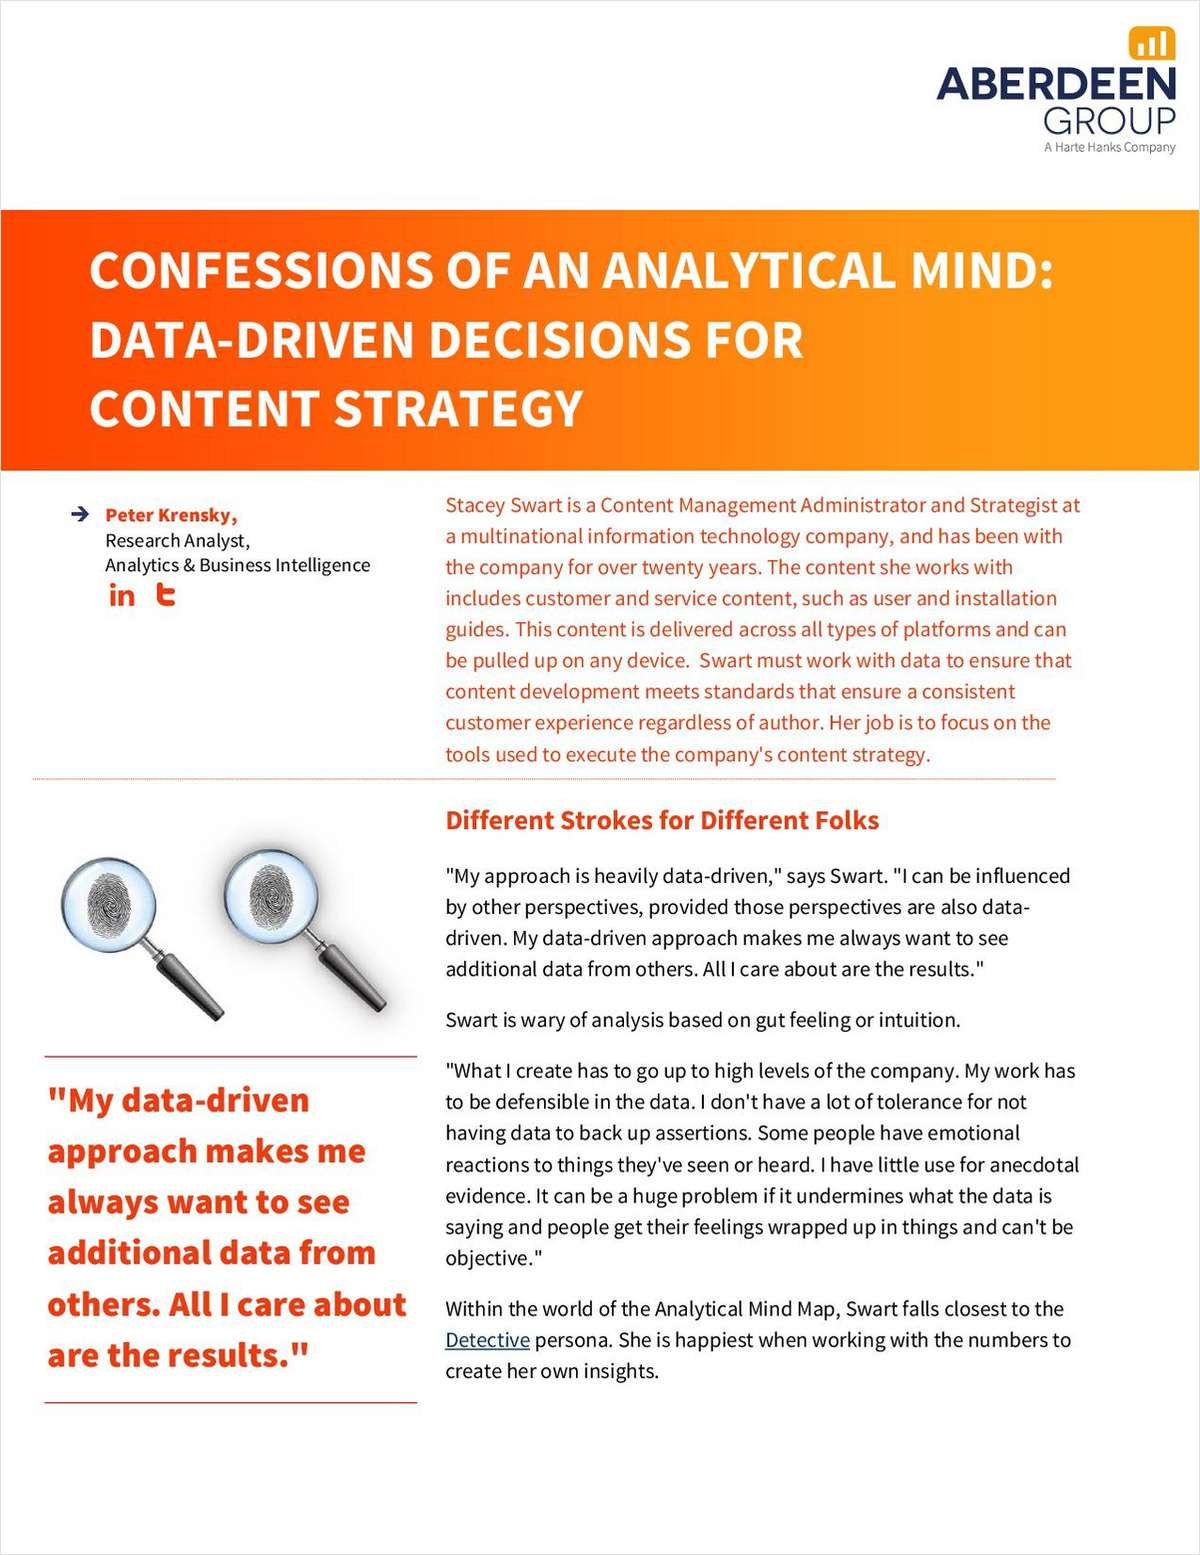 Confessions of an Analytical Mind: Data-Driven Decisions for Content Strategy